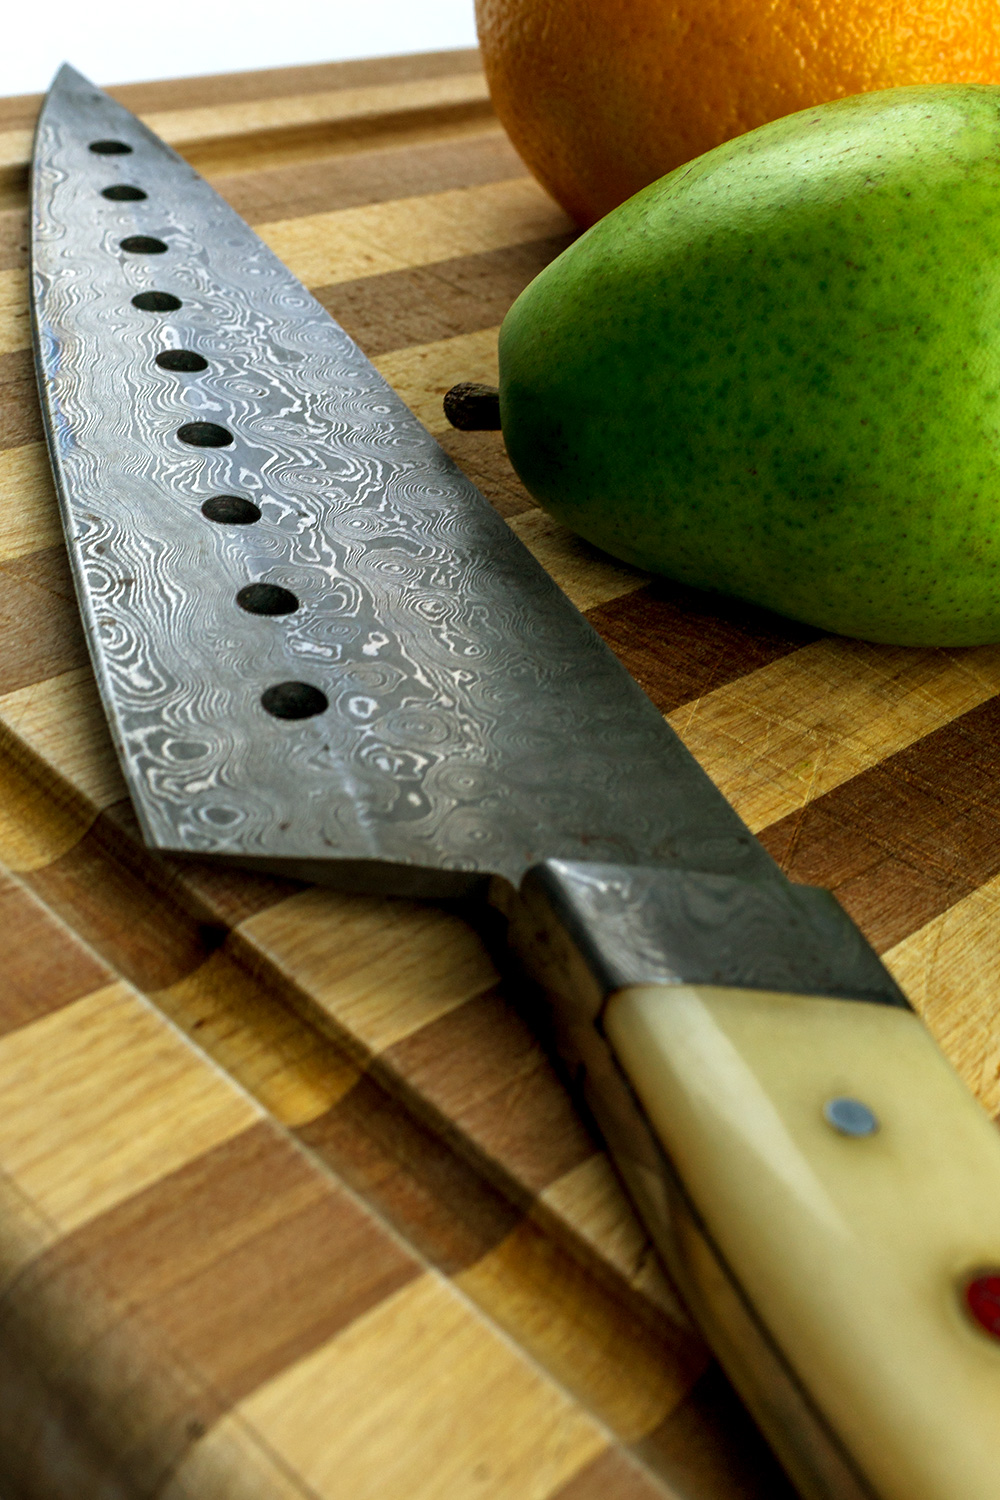 Knife and Fruit